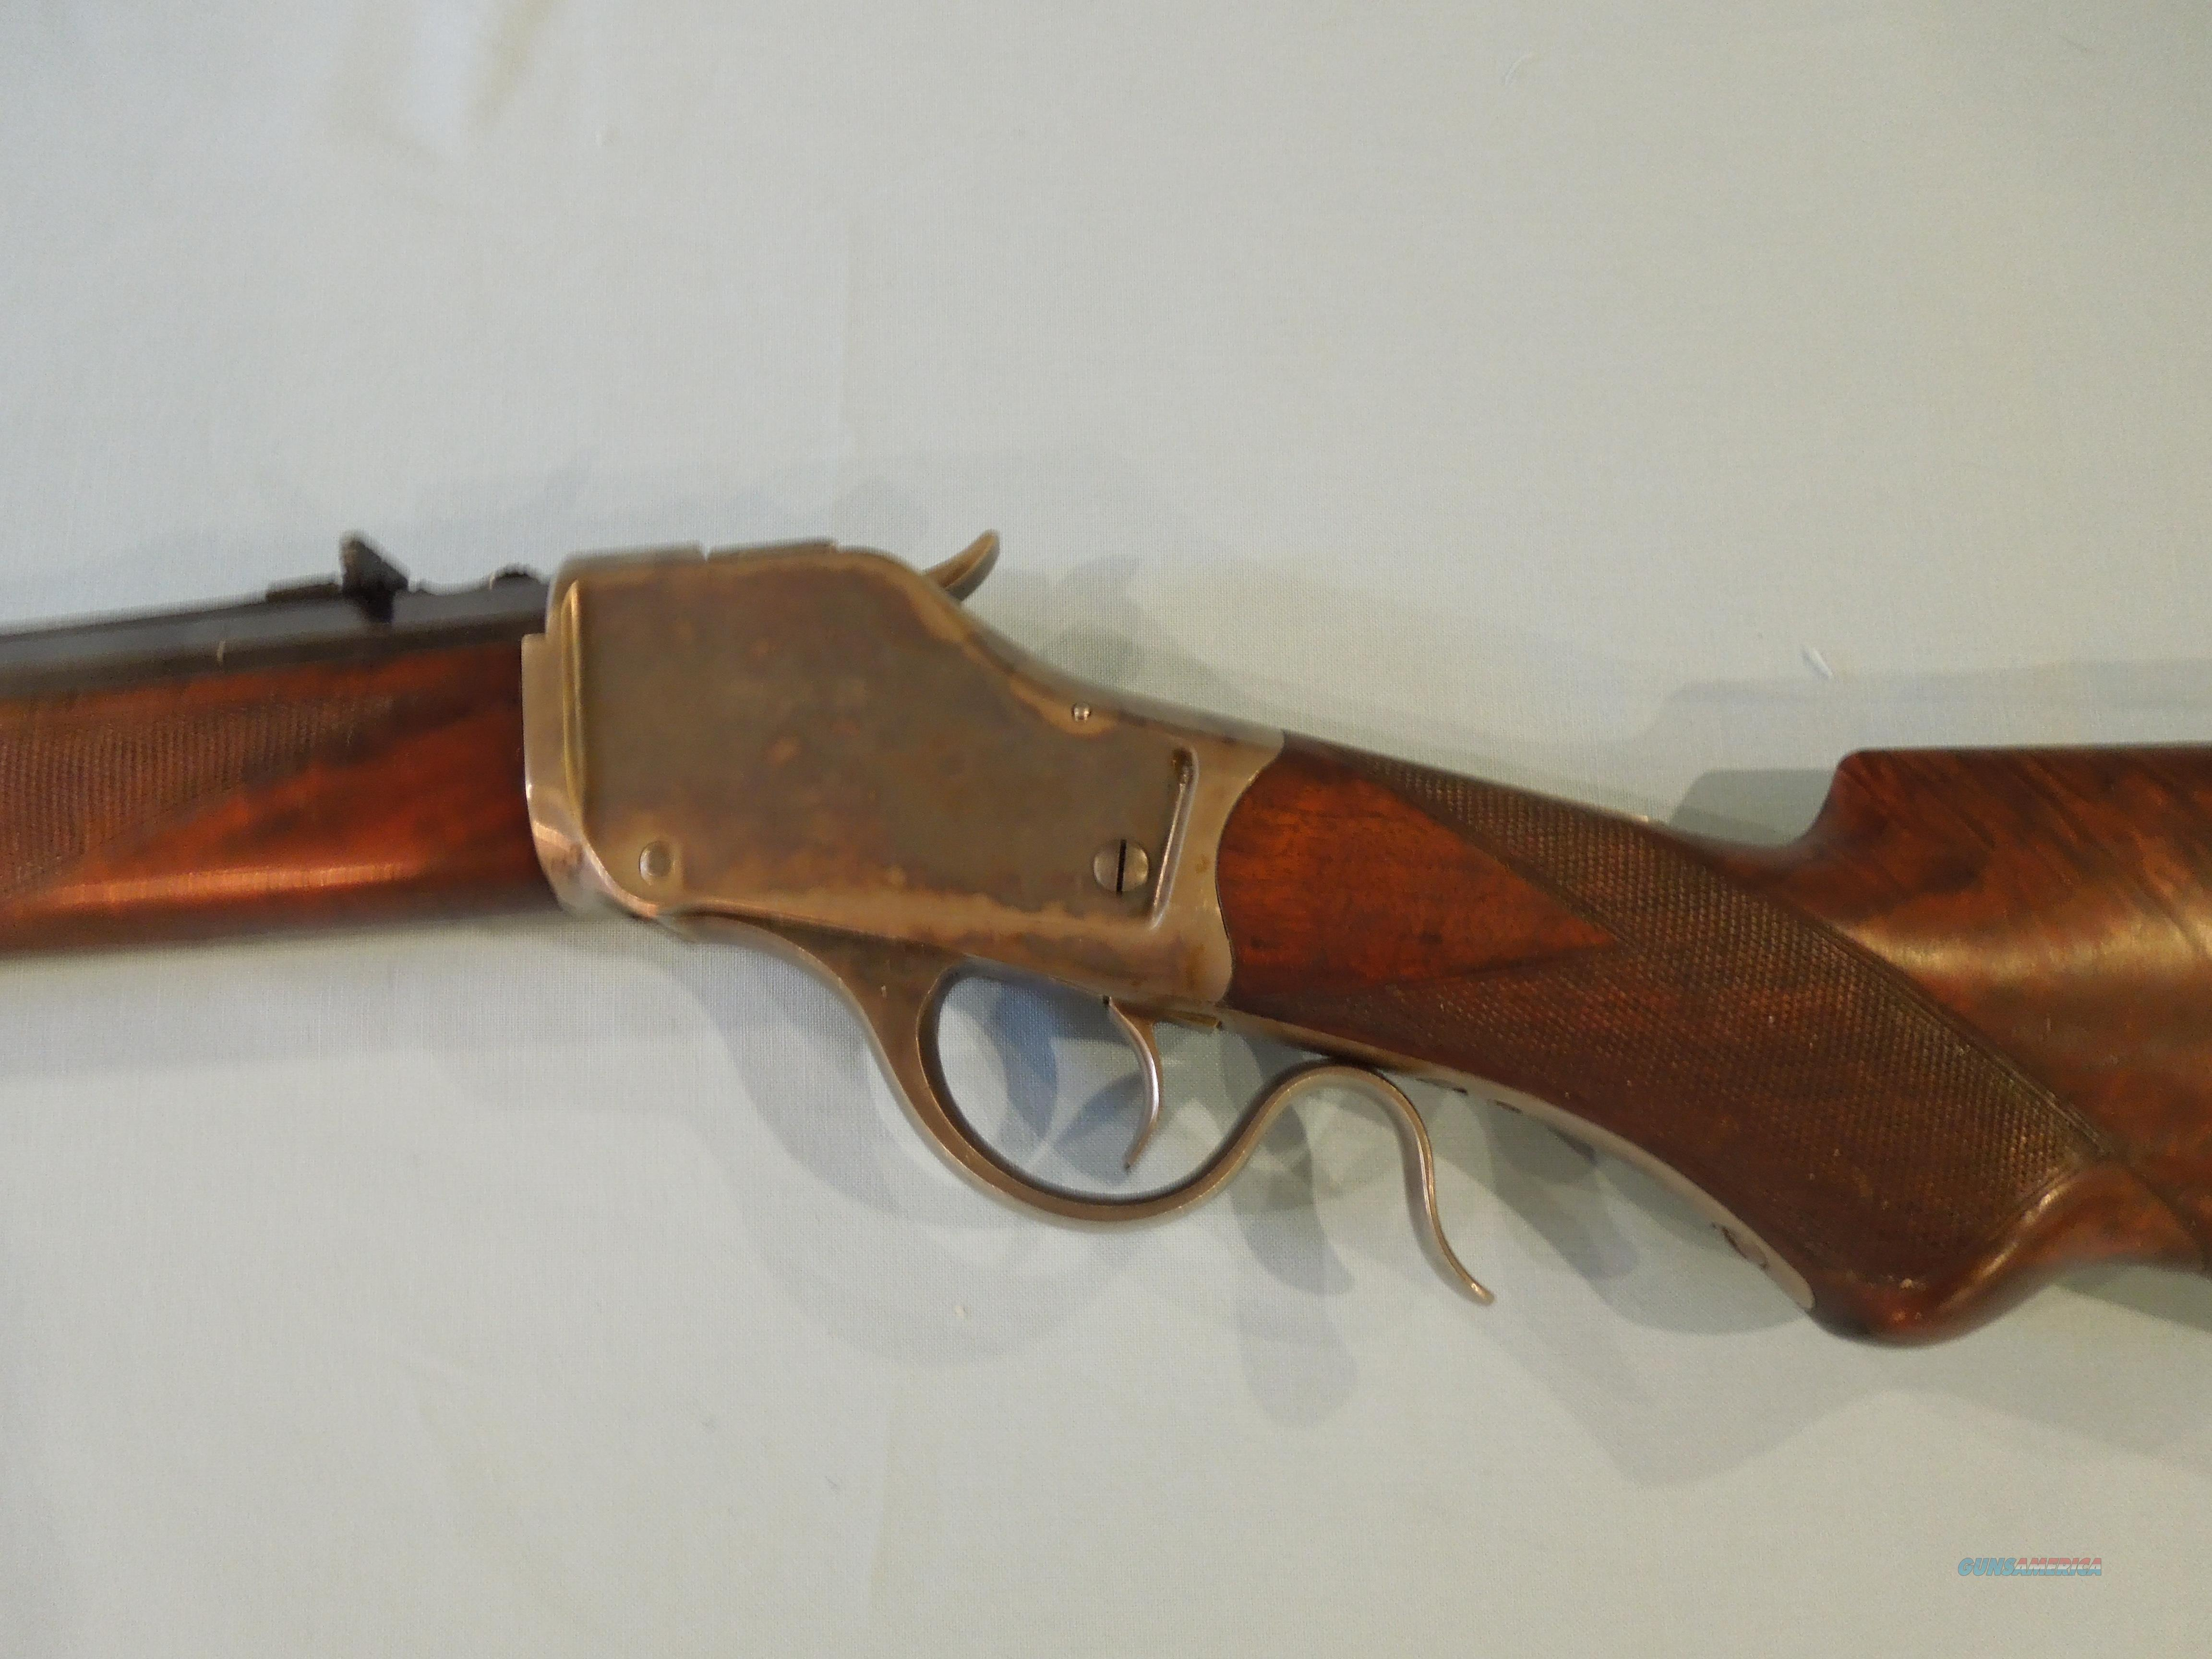 black singles in winchester center Antique ammo, tools & neat stuff in addition to a full selection of collector firearms, we keep an extensive inventory of other collectibles such as antique ammo, old ammo boxes, medical tools, sculptures and much more.